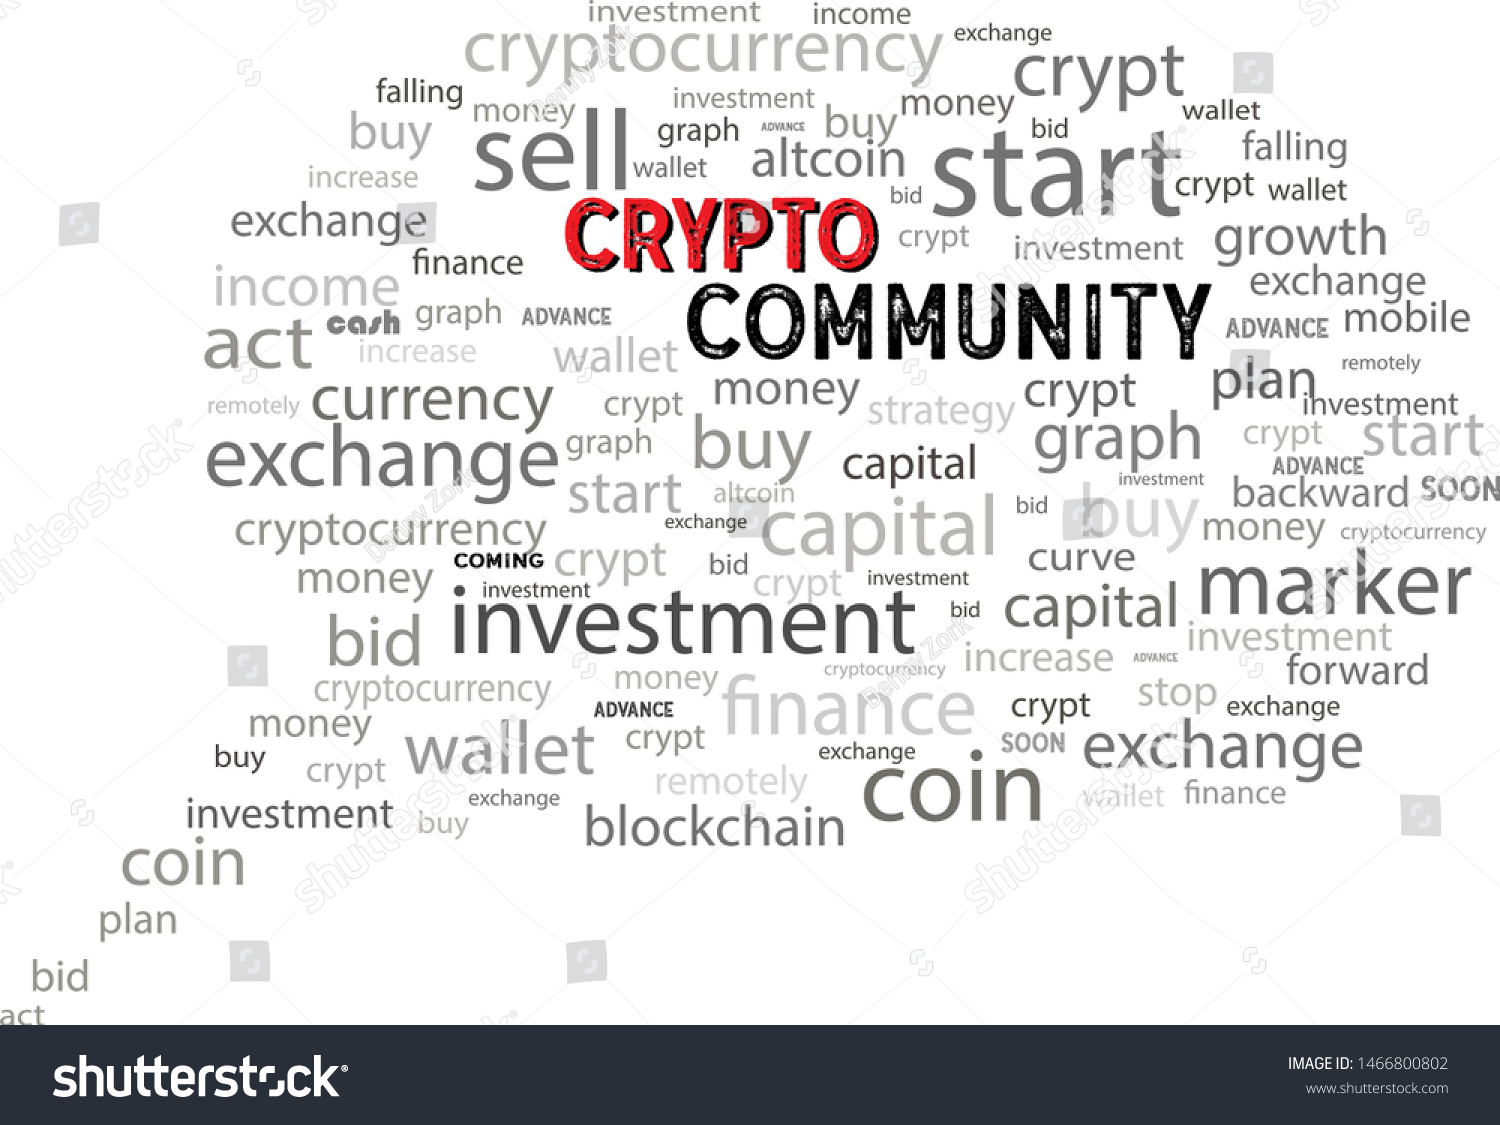 4 Most Active Crypto Communities - AirdropAlert